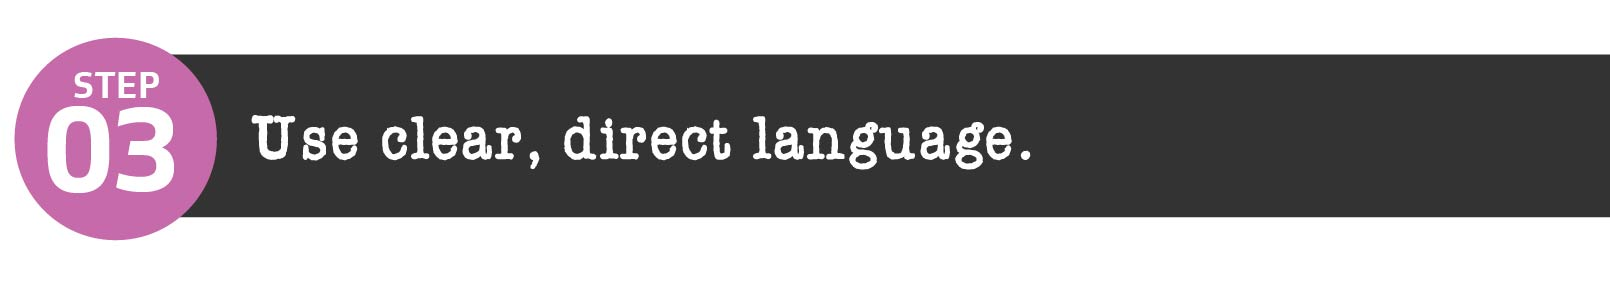 Use clear, direct language in your job description